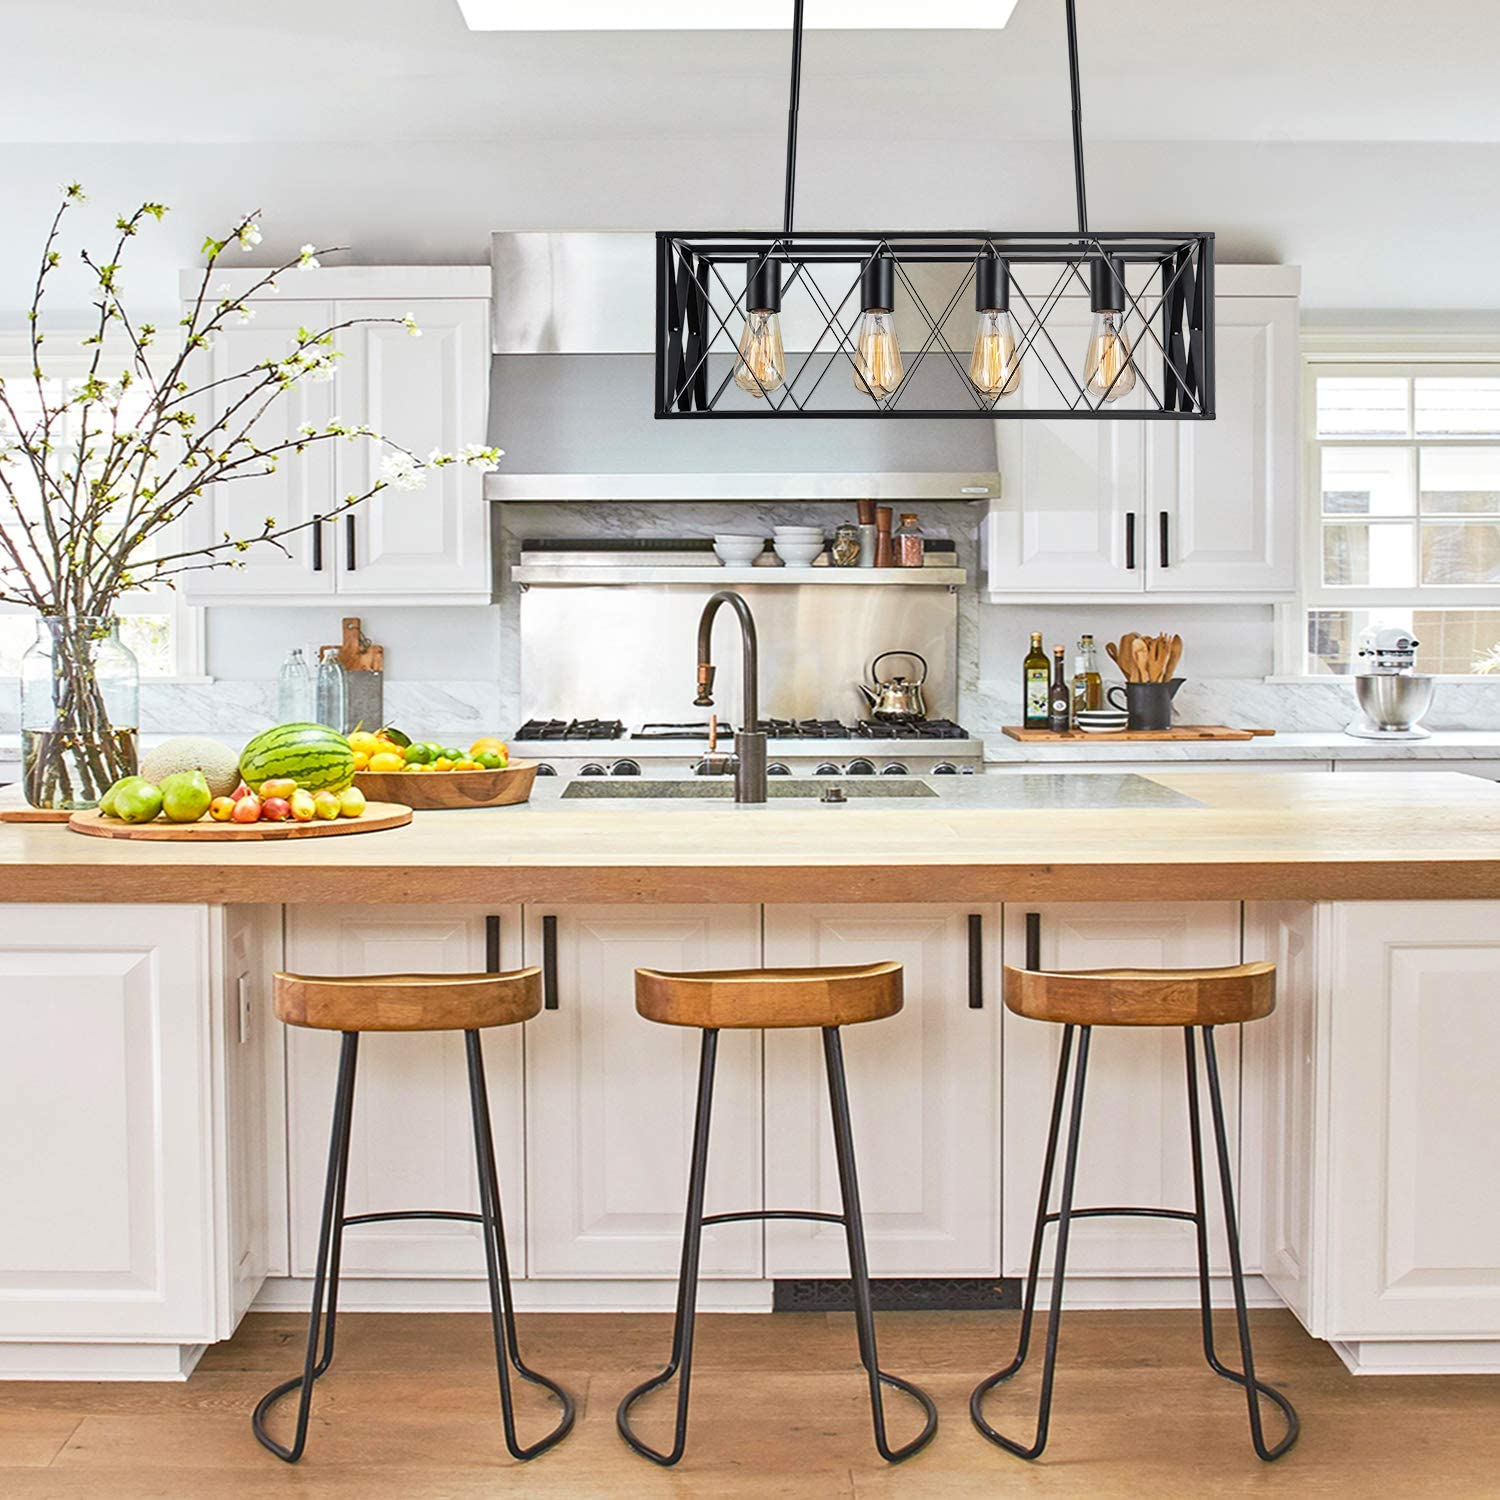 Vintage Liner Kitchen Hanging Light Fixture with 4 Lights Kitchen Island Chandelier Farmhouse Rectangle Pendant Light Fixture for Dining Room